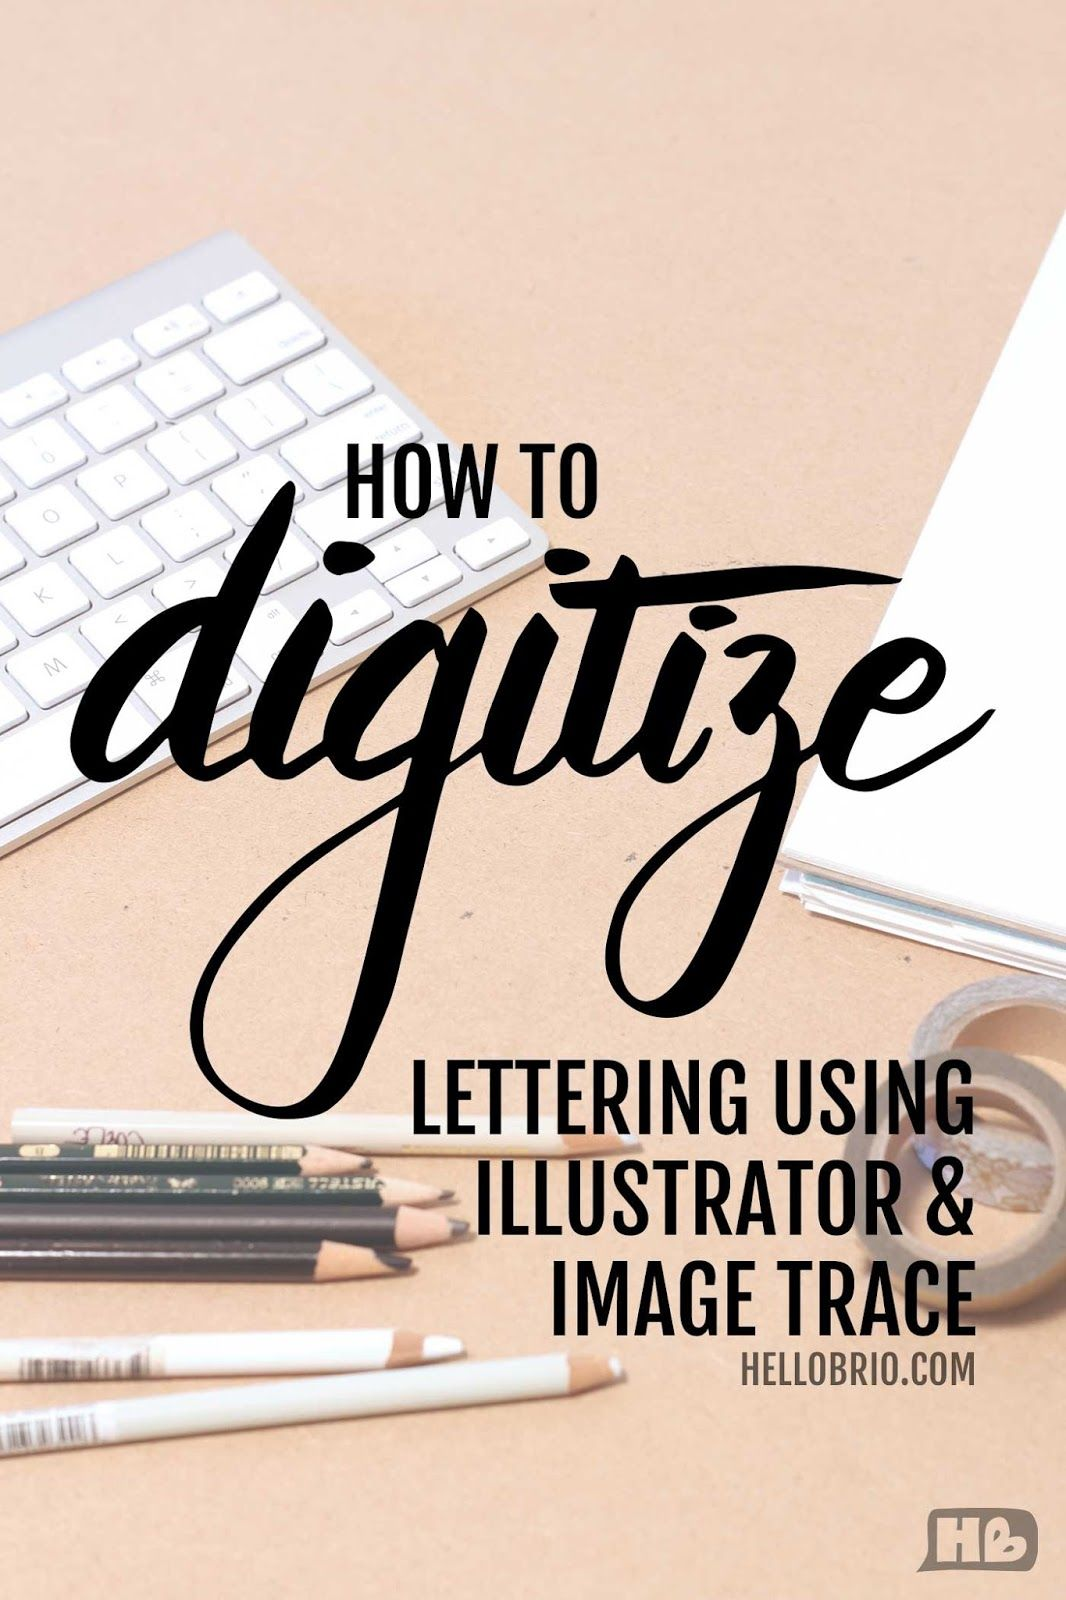 Video tutorial on how to digitize your hand lettering and